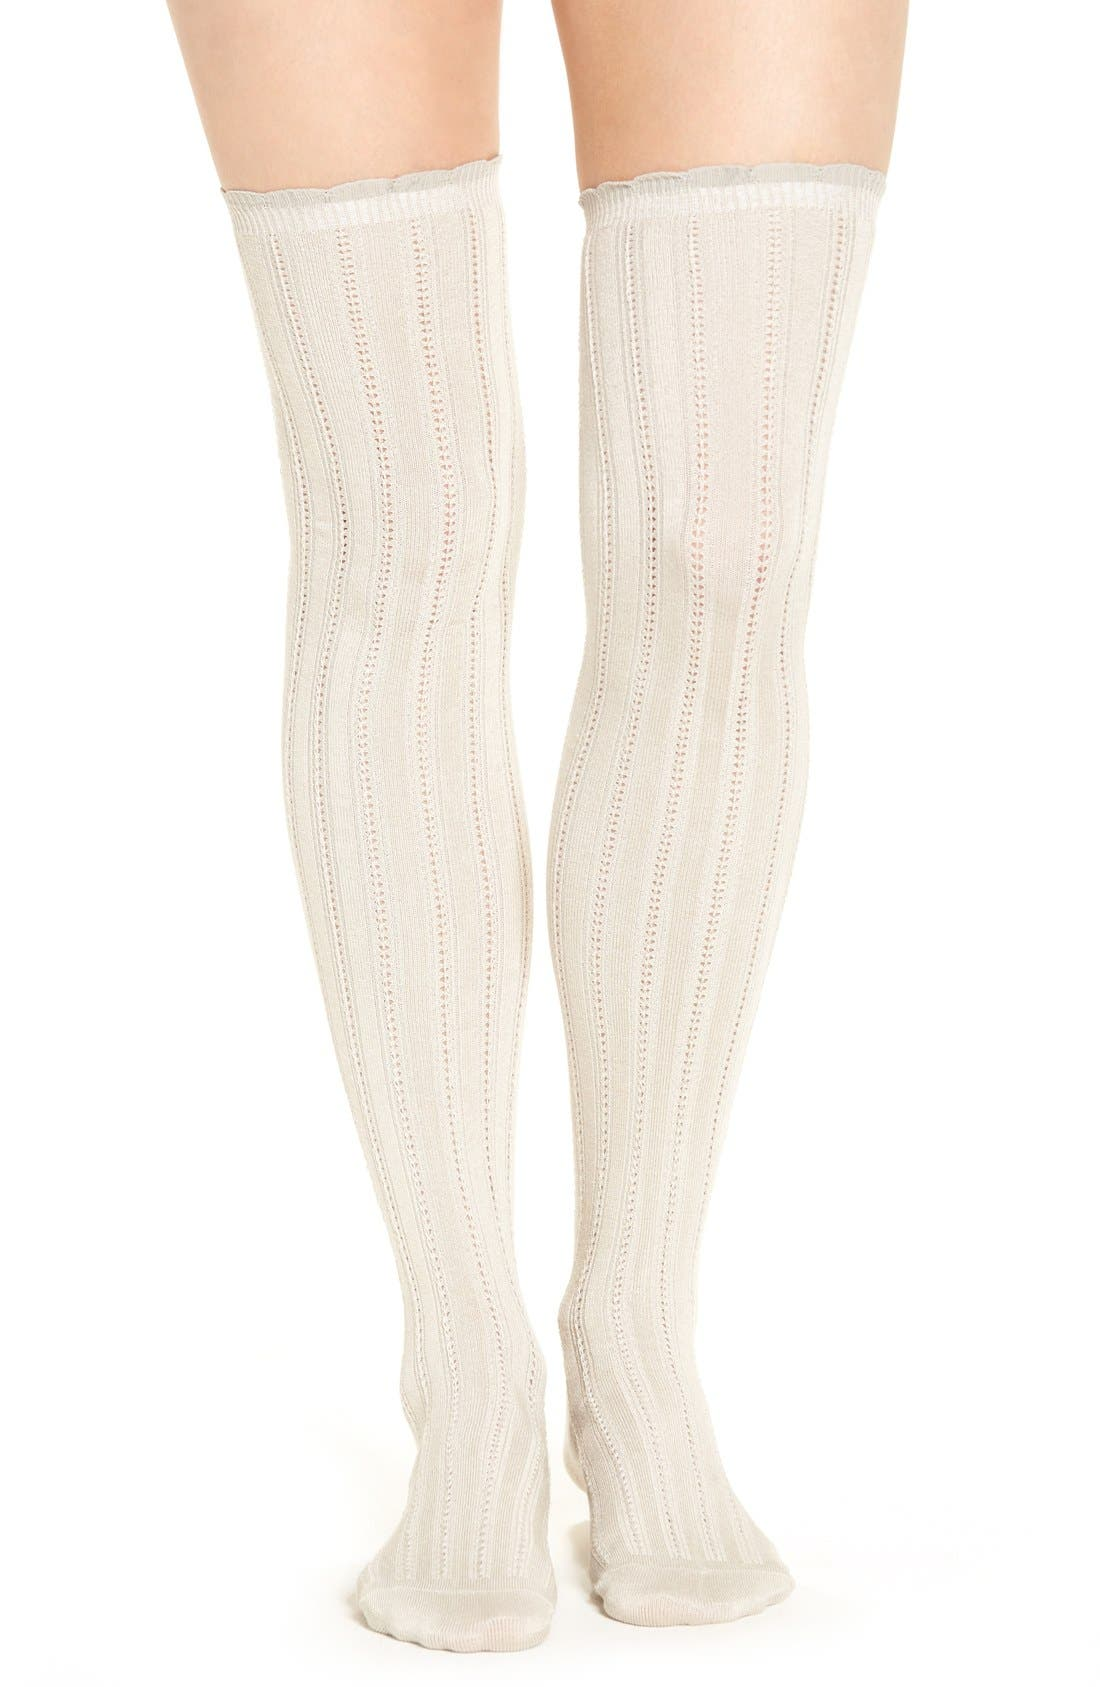 Alternate Image 1 Selected - Free People 'All For One' Pointelle Knit Over The Knee Socks